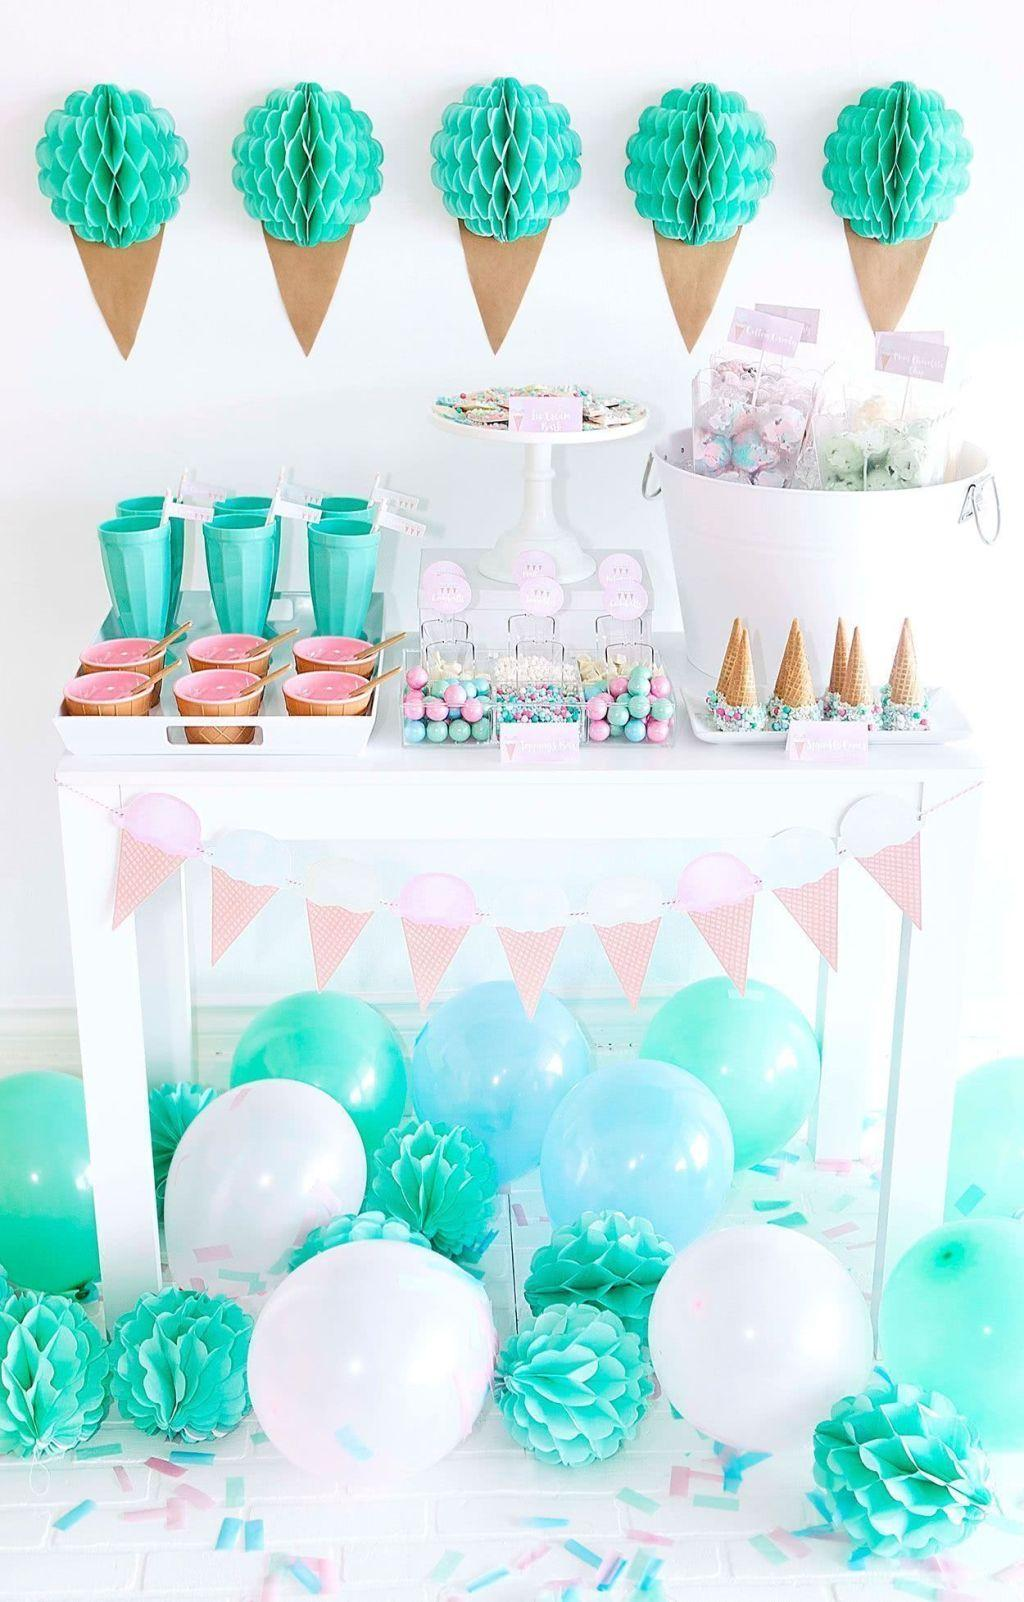 Decoration with balloons: 85 inspirations to decorate 25